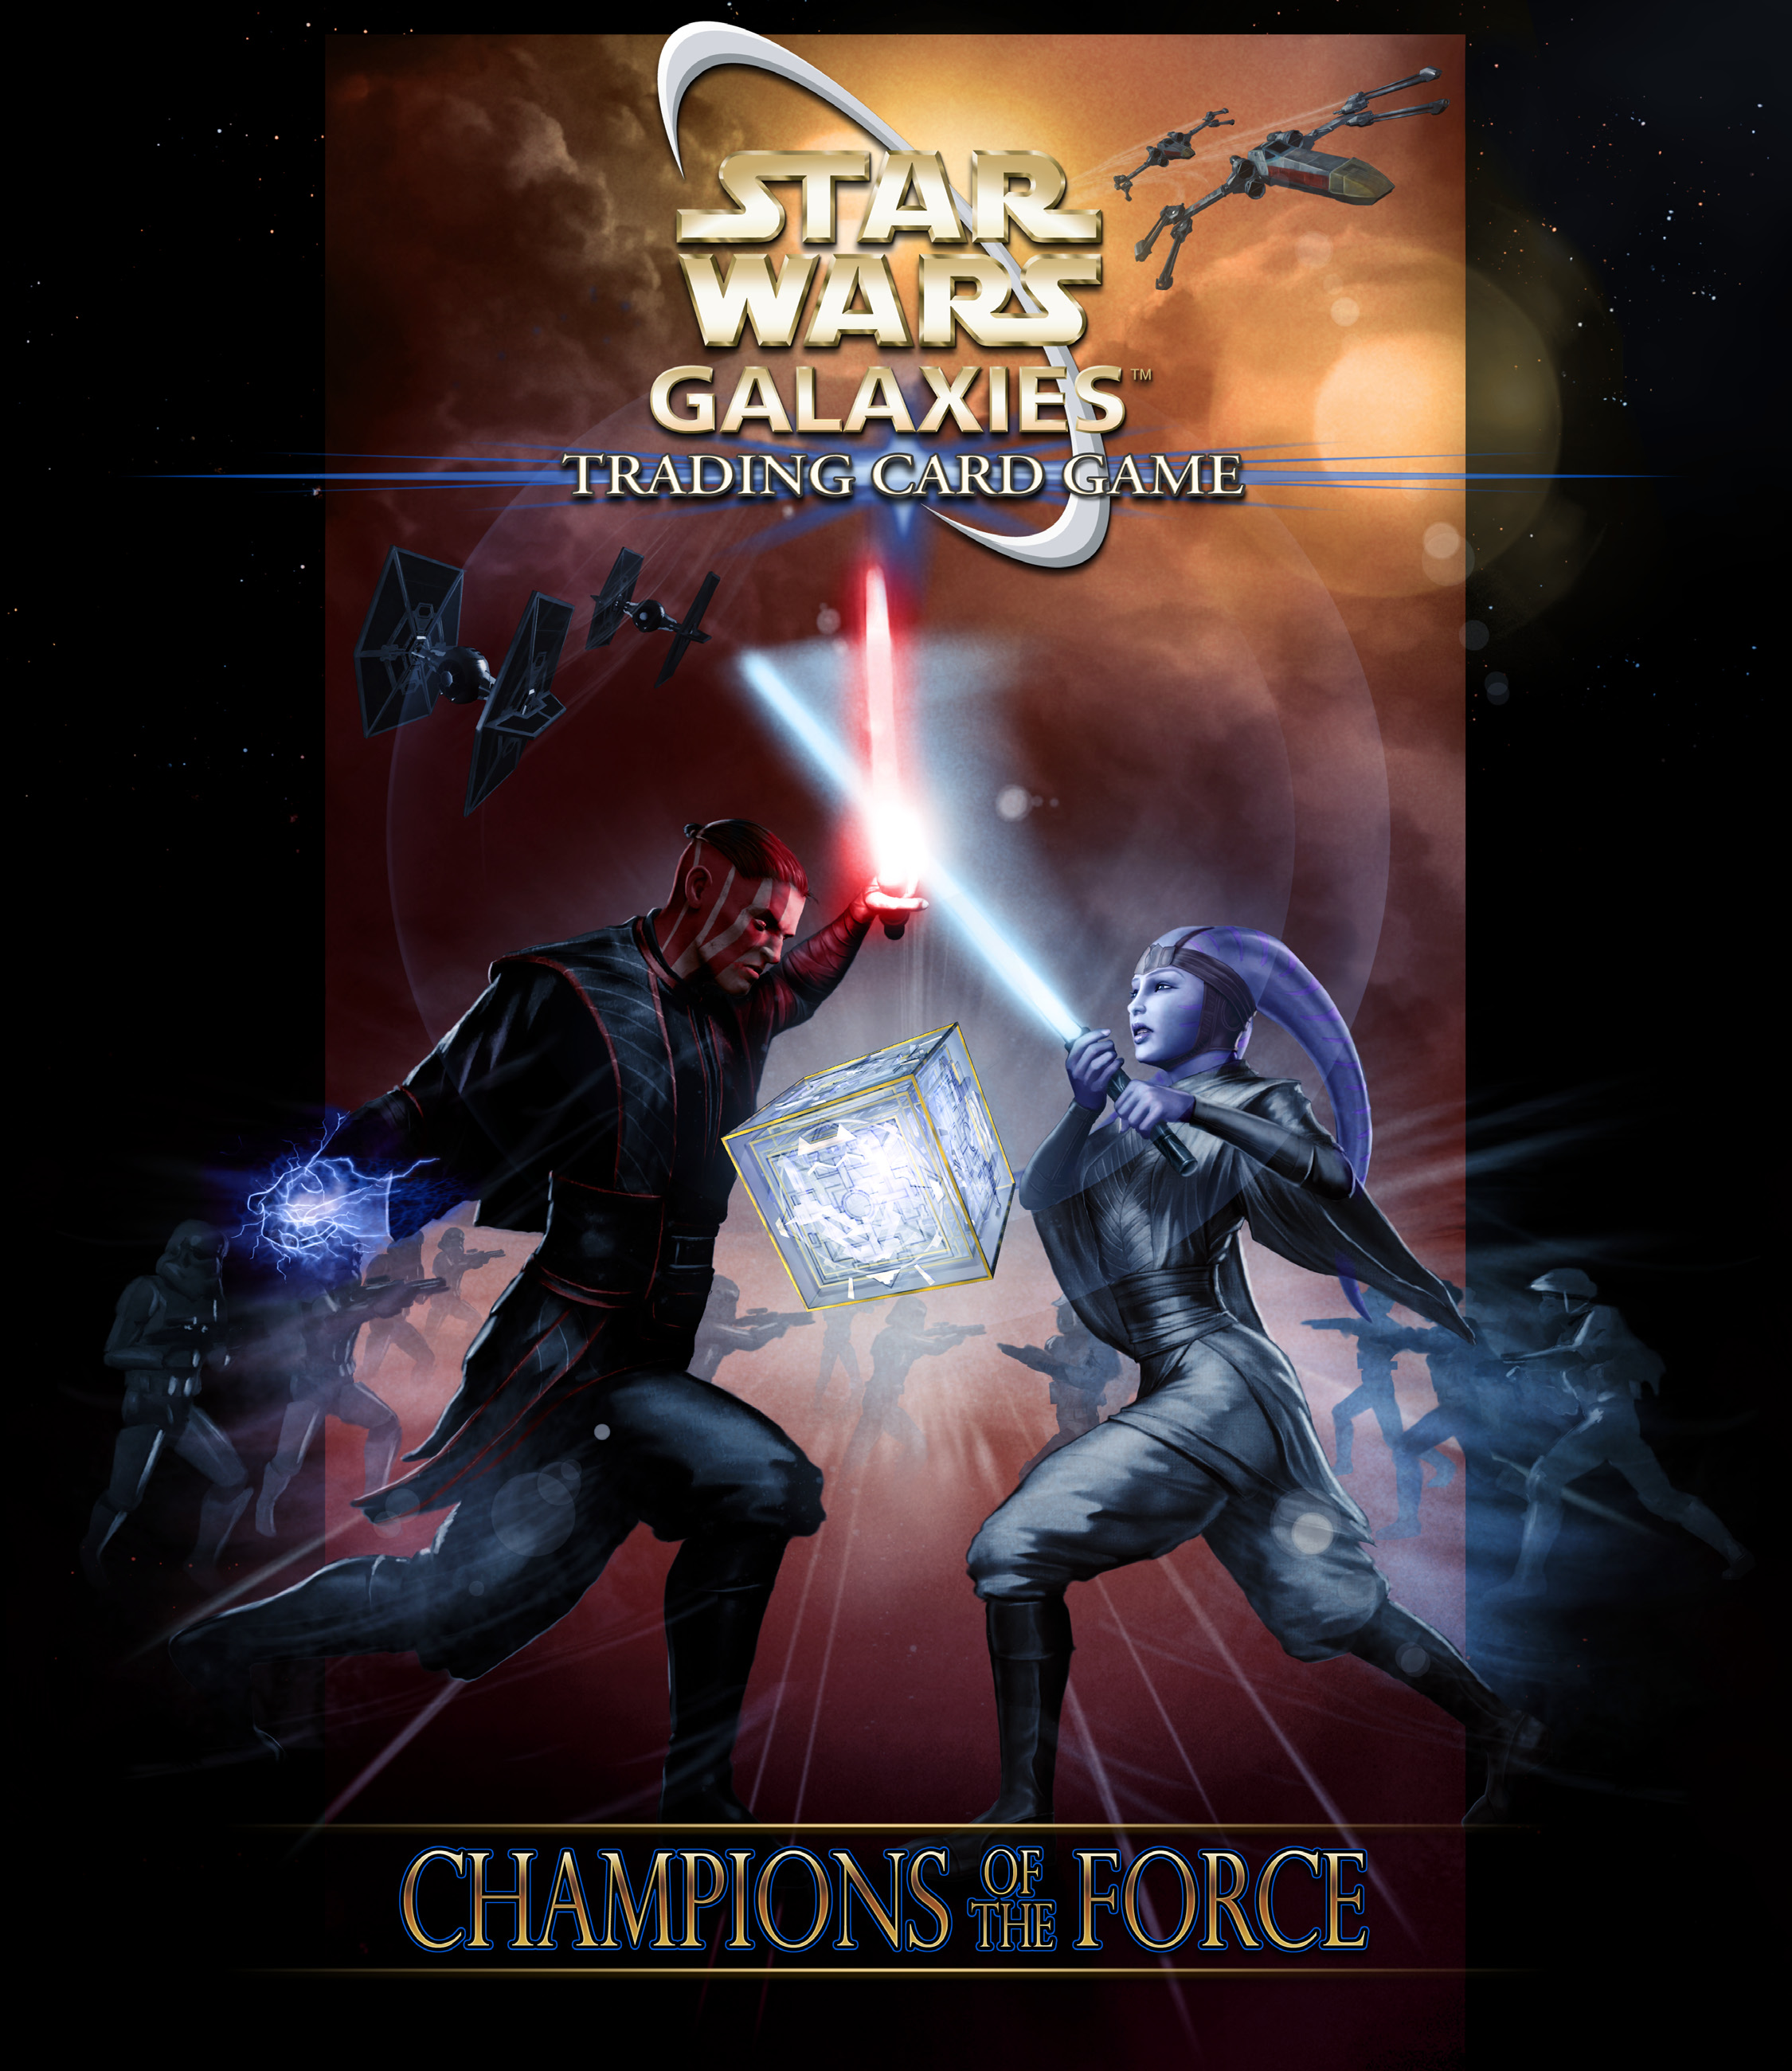 Champions of the Force (SWGTCG)